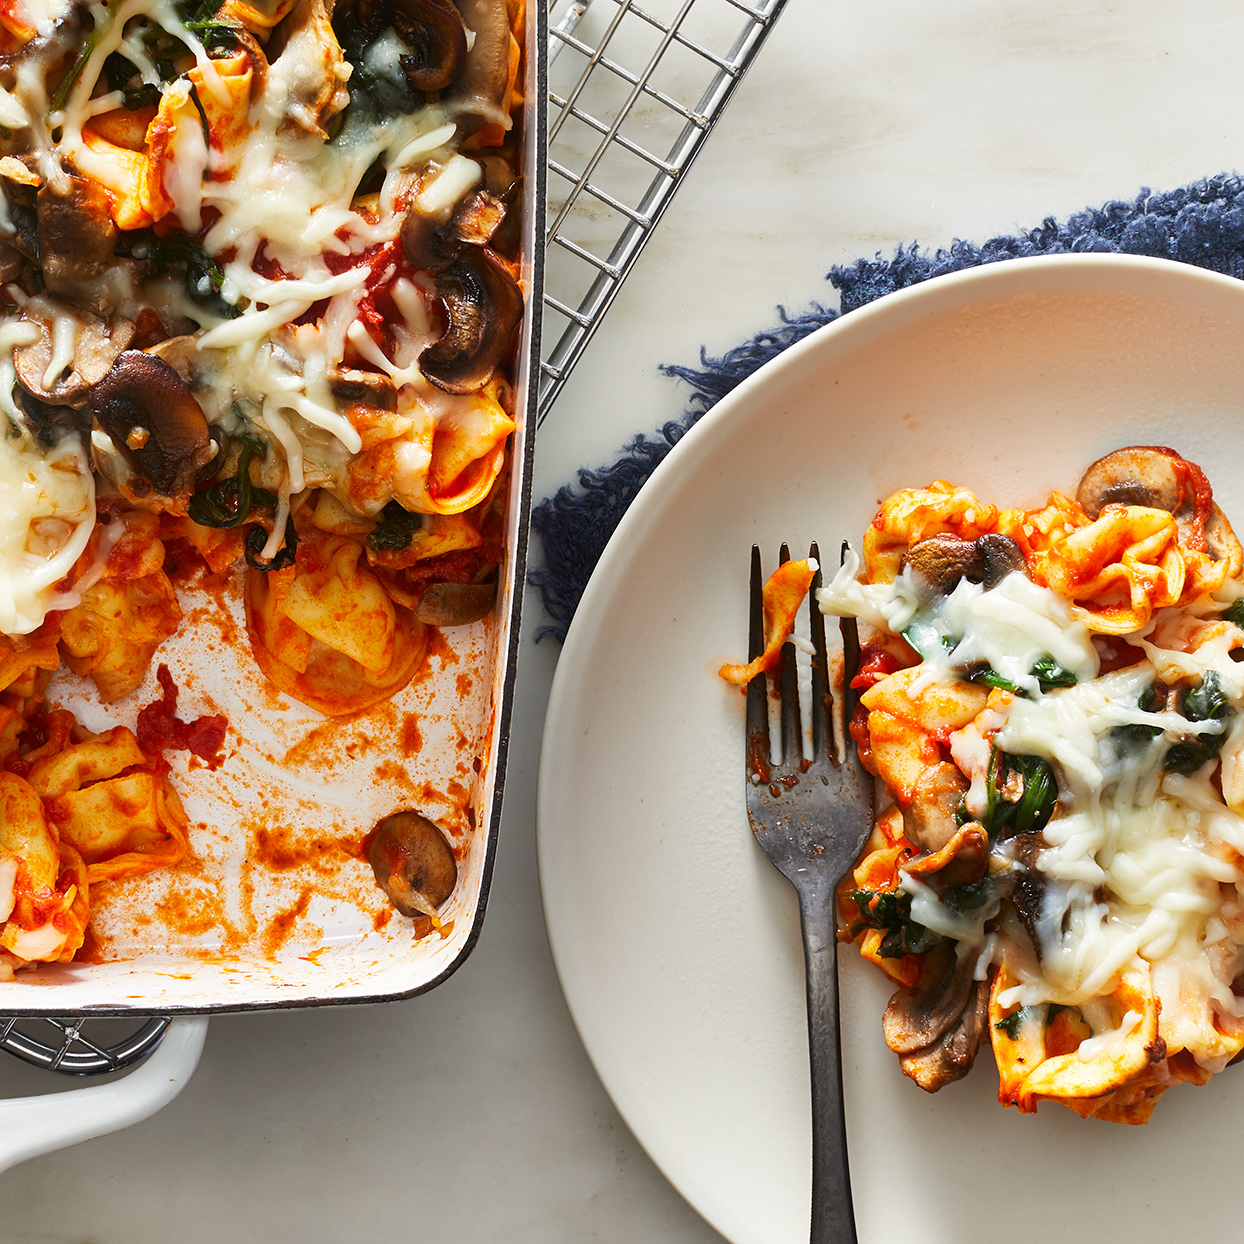 This cheesy tortellini bake is a dish the whole family will love--it's filled with sweet-tasting marinara, mushrooms and spinach and topped with melted cheese. Complete the meal, plus get in another vegetable serving, by adding a side of broccoli or a small green salad. Source: EatingWell.com, September 2019